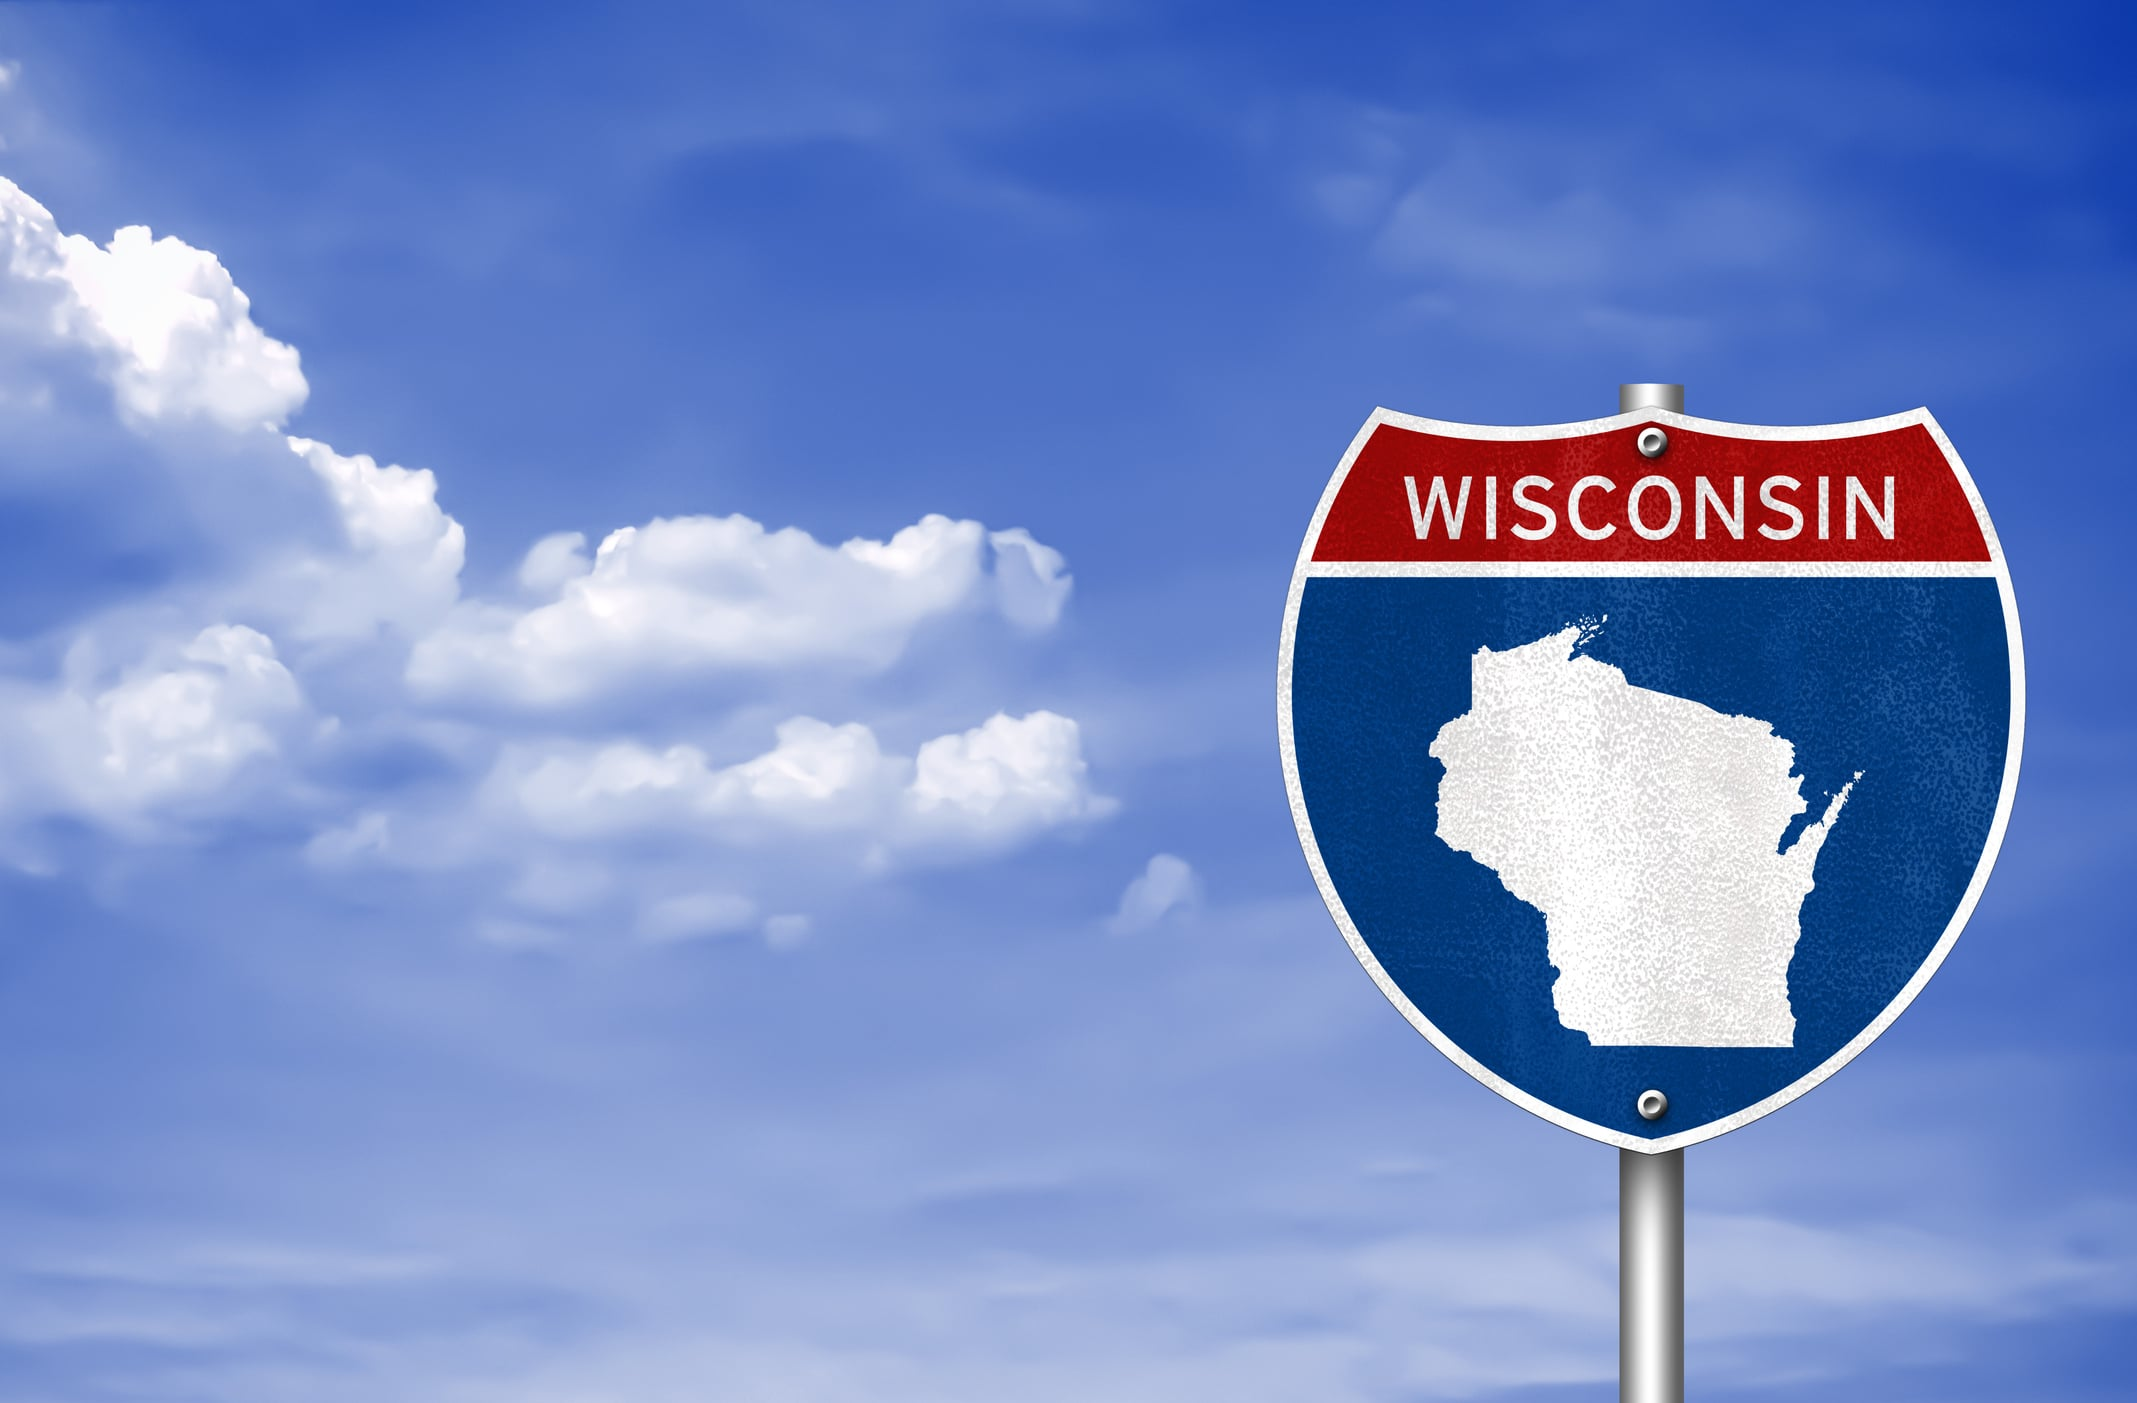 Wisconsin Road Sign